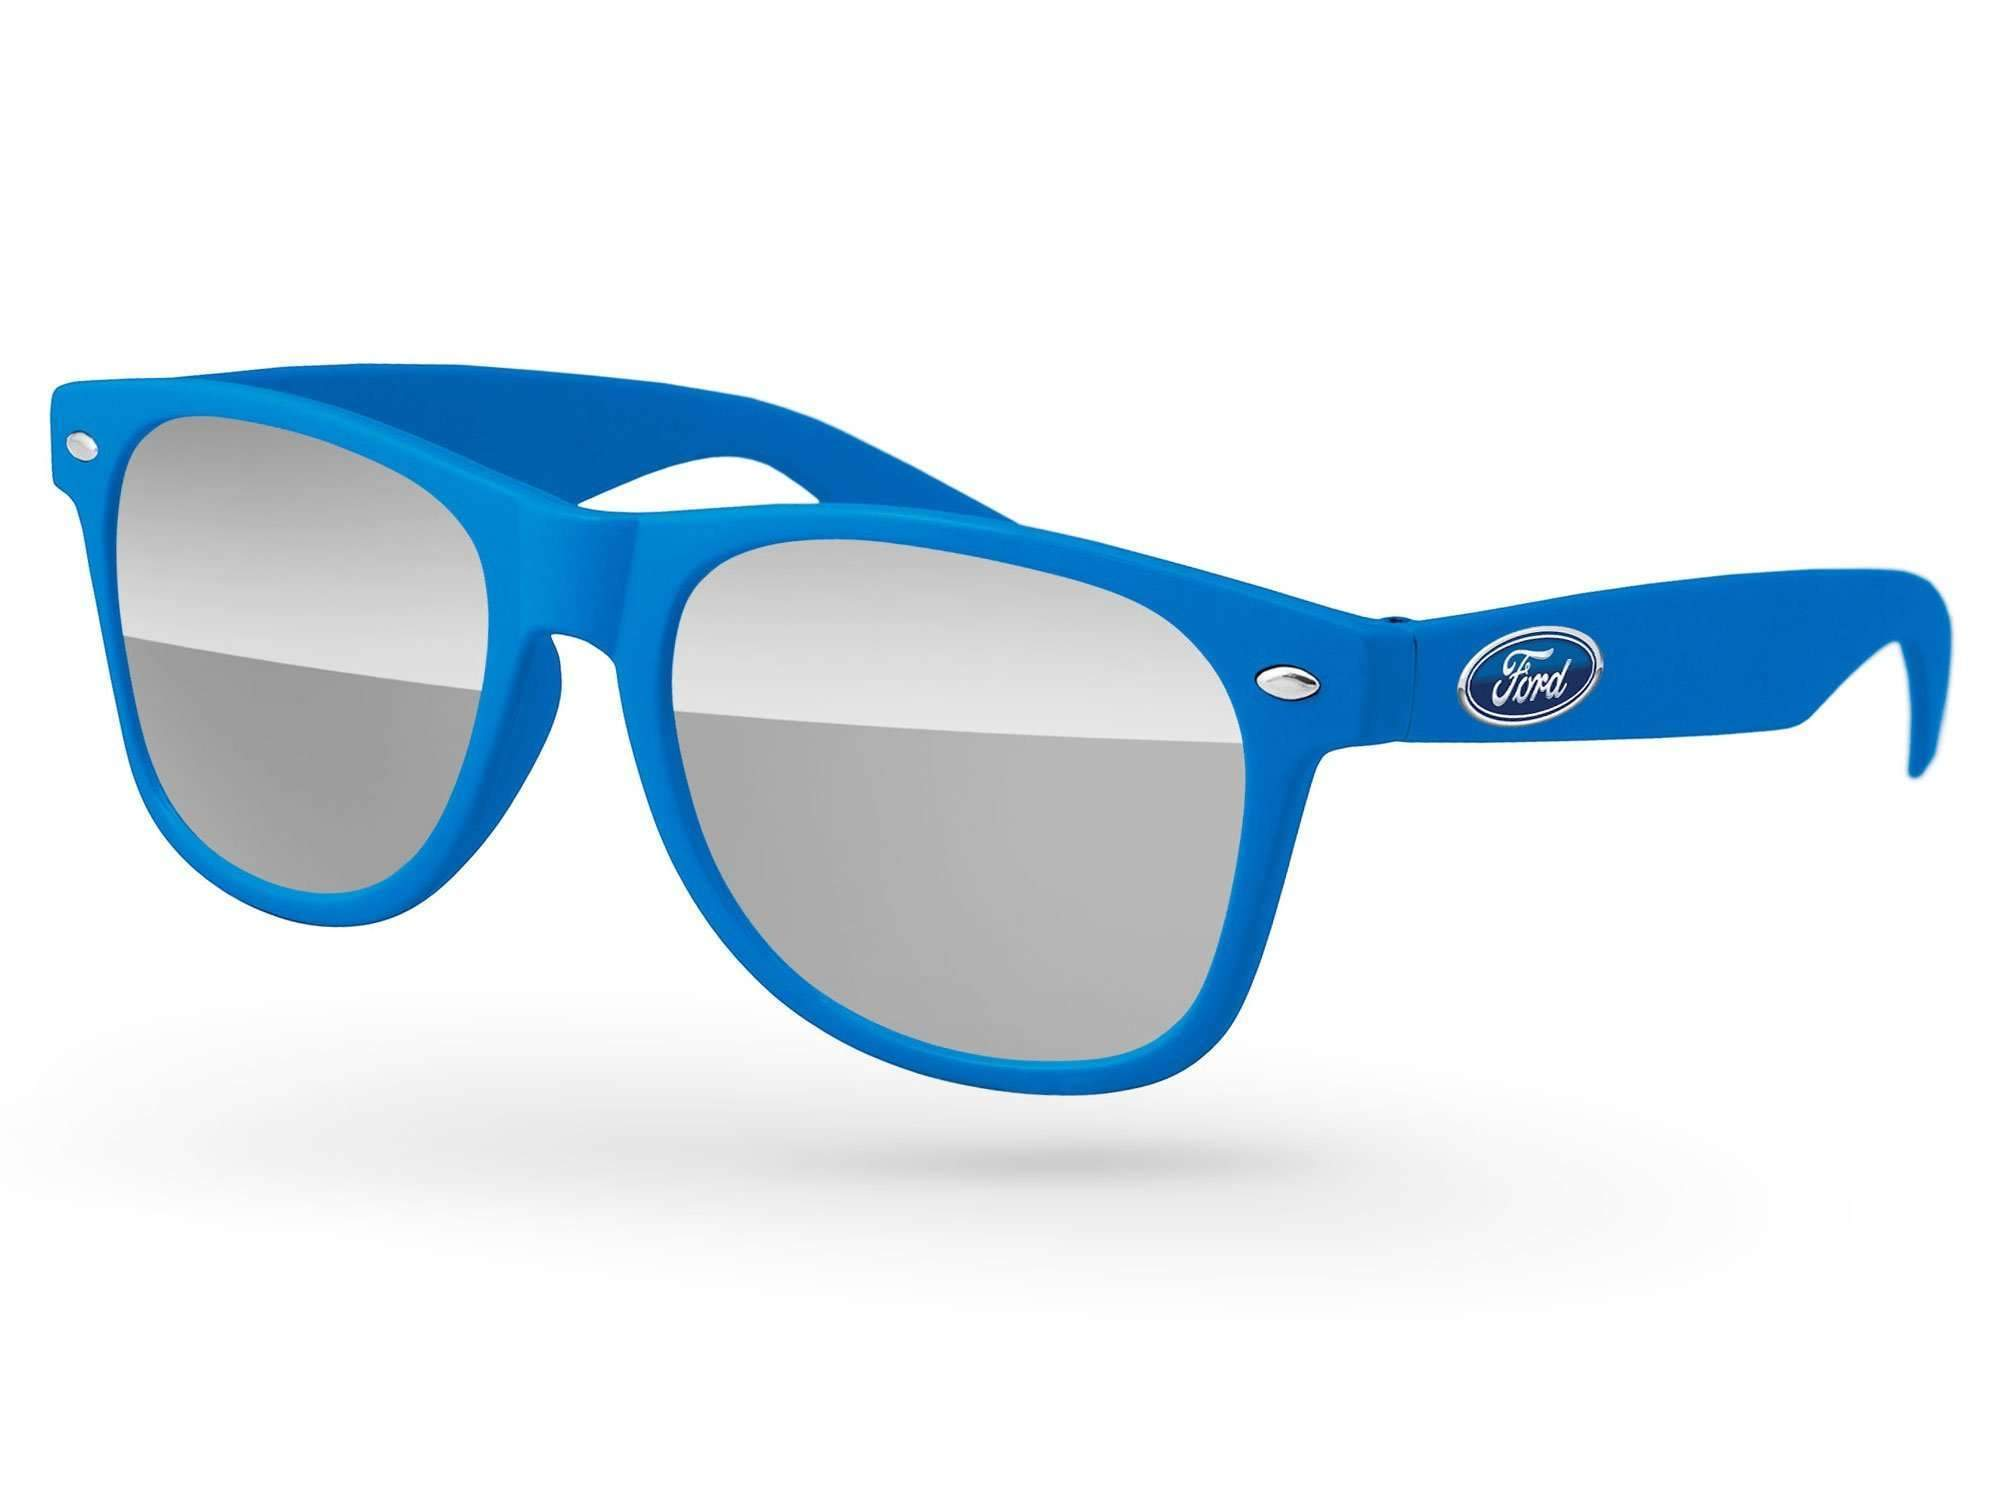 RM020 - Retro Mirror Promotional Sunglasses w/ full-color temple imprint